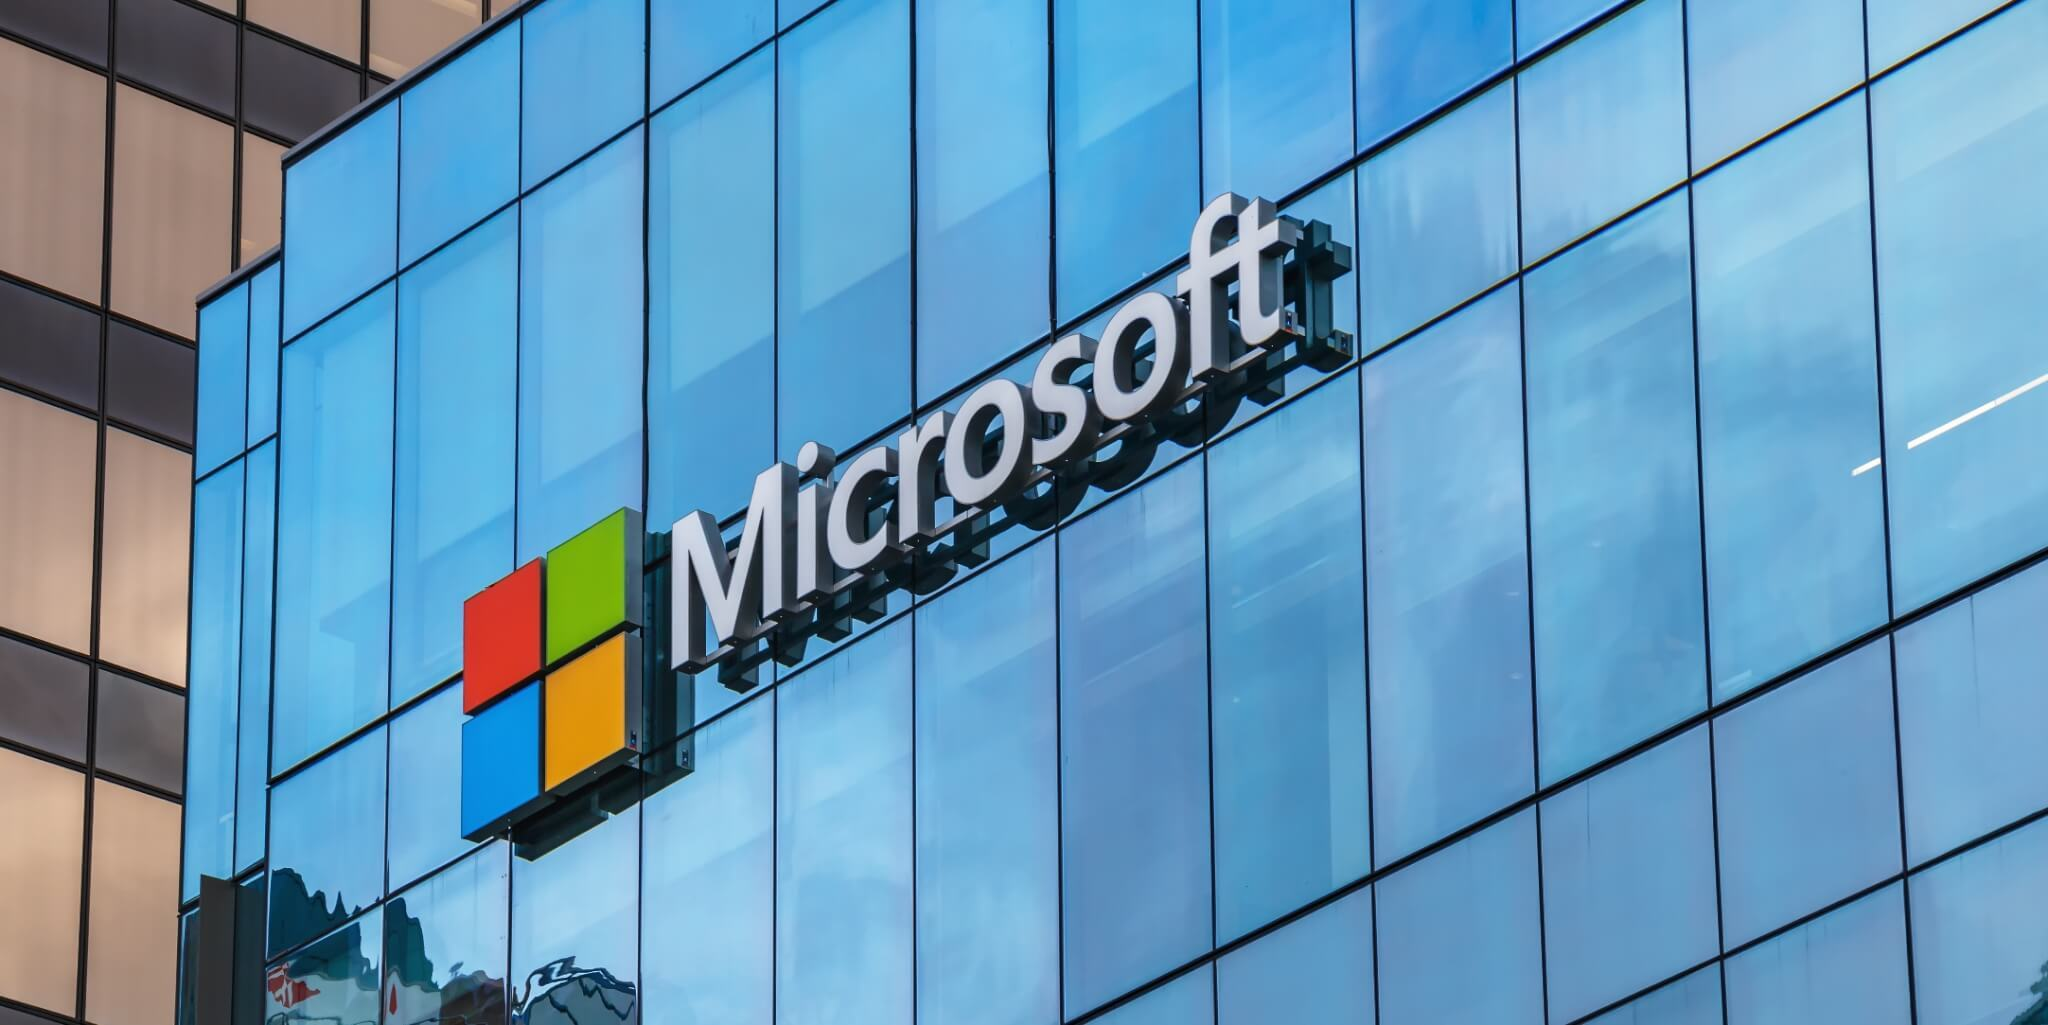 Doing Good: Microsoft To Distribute $20m In Grants To Nonprofits, Offers Free Skills Training